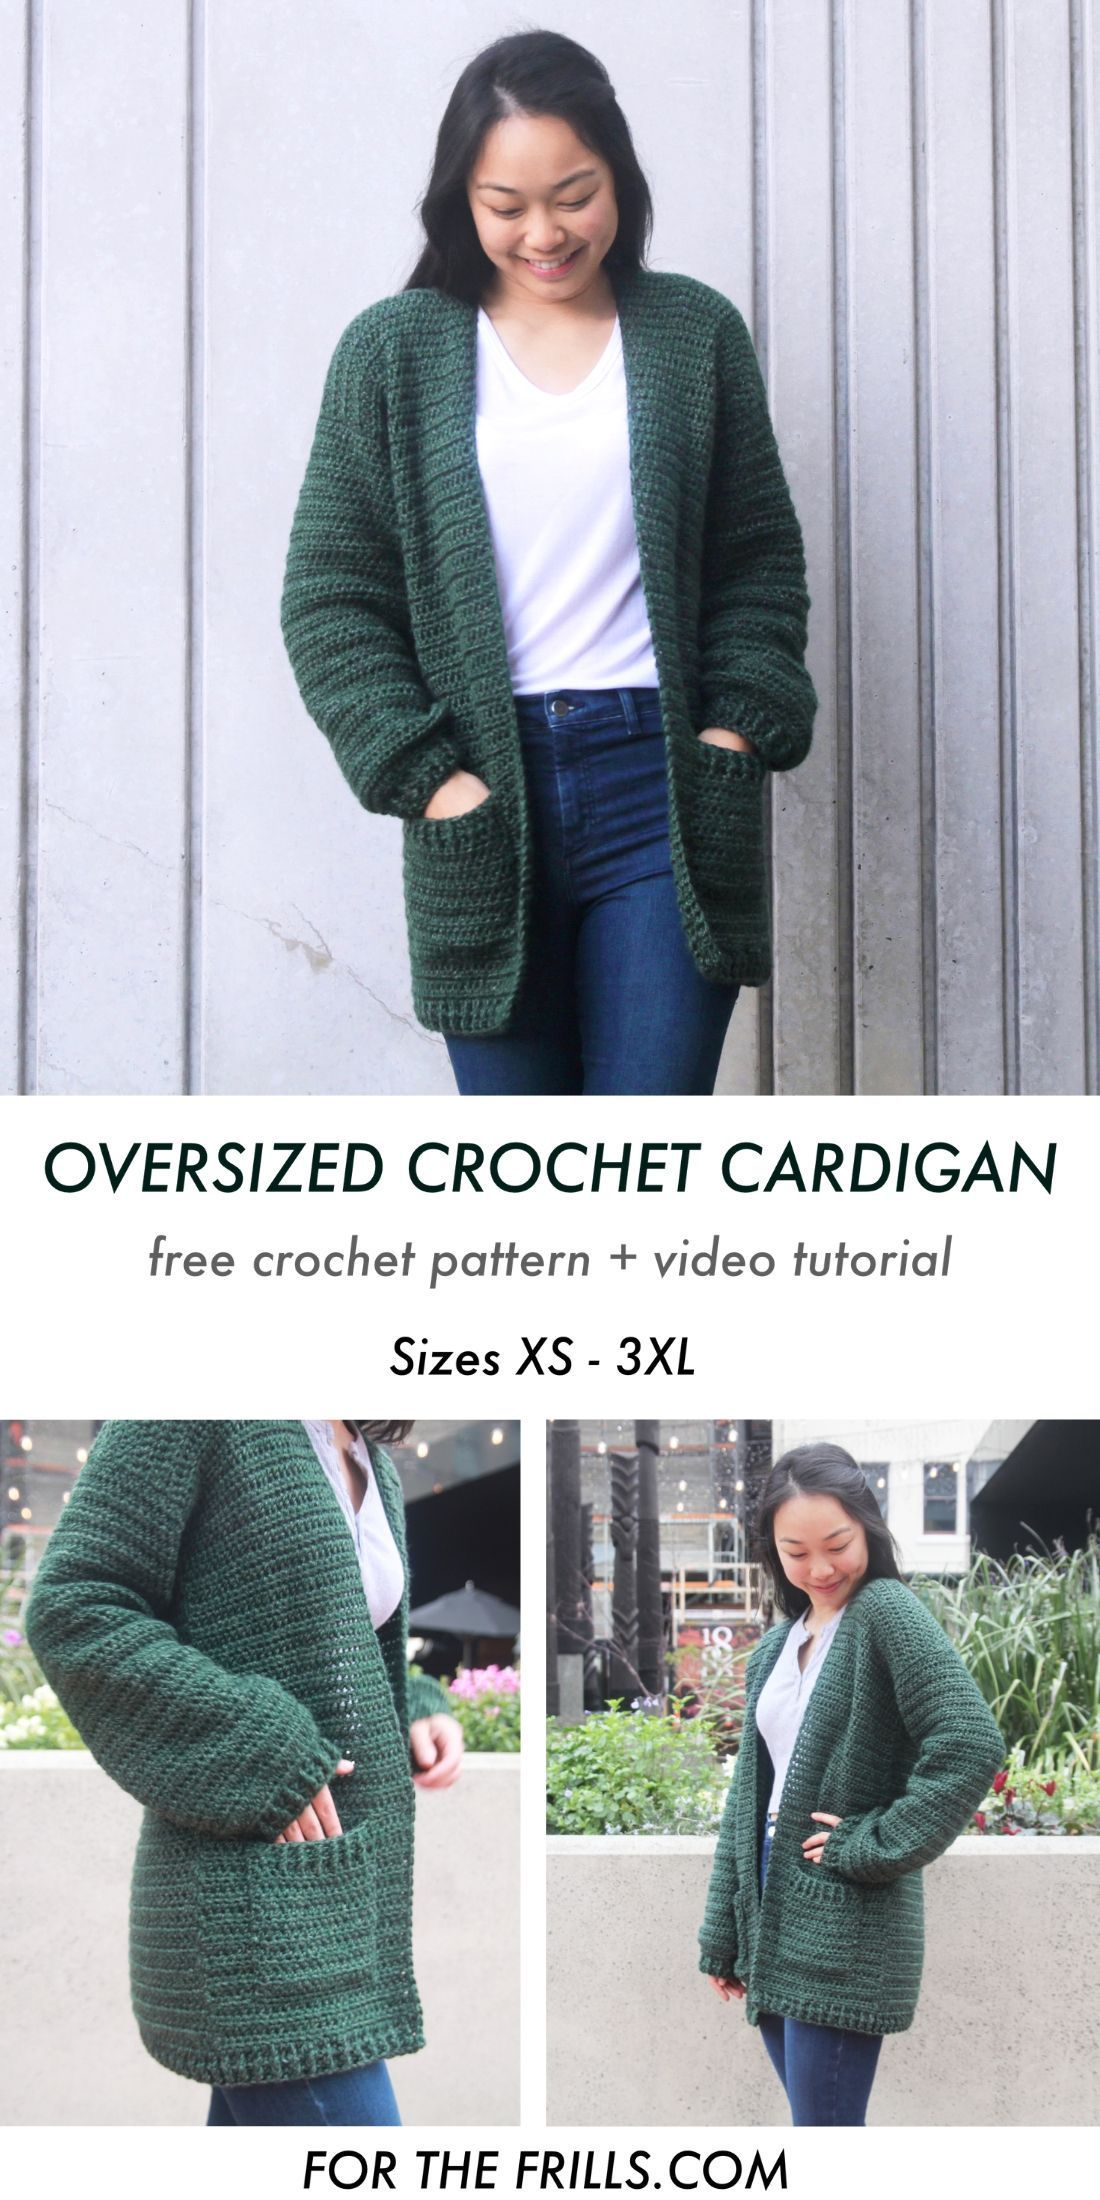 This oversized crochet cardigan sweater pattern is cosy, comfy and perfect for fall! With a long body, loose sleeves and pockets the Briar Cardigan is a free, easy crochet cardigan pattern. Free crochet pattern and video tutorial. #crochetcardigan #crochetsweater #crochetjumper #freecrochetcardiganpattern #fallcrochet #autumncrochet #freecrochet #crochettutorial #crochetcardiganpattern #forthefrills #lionbrandyarn #crochetvideotutorial #diy #sweatercrochetpattern